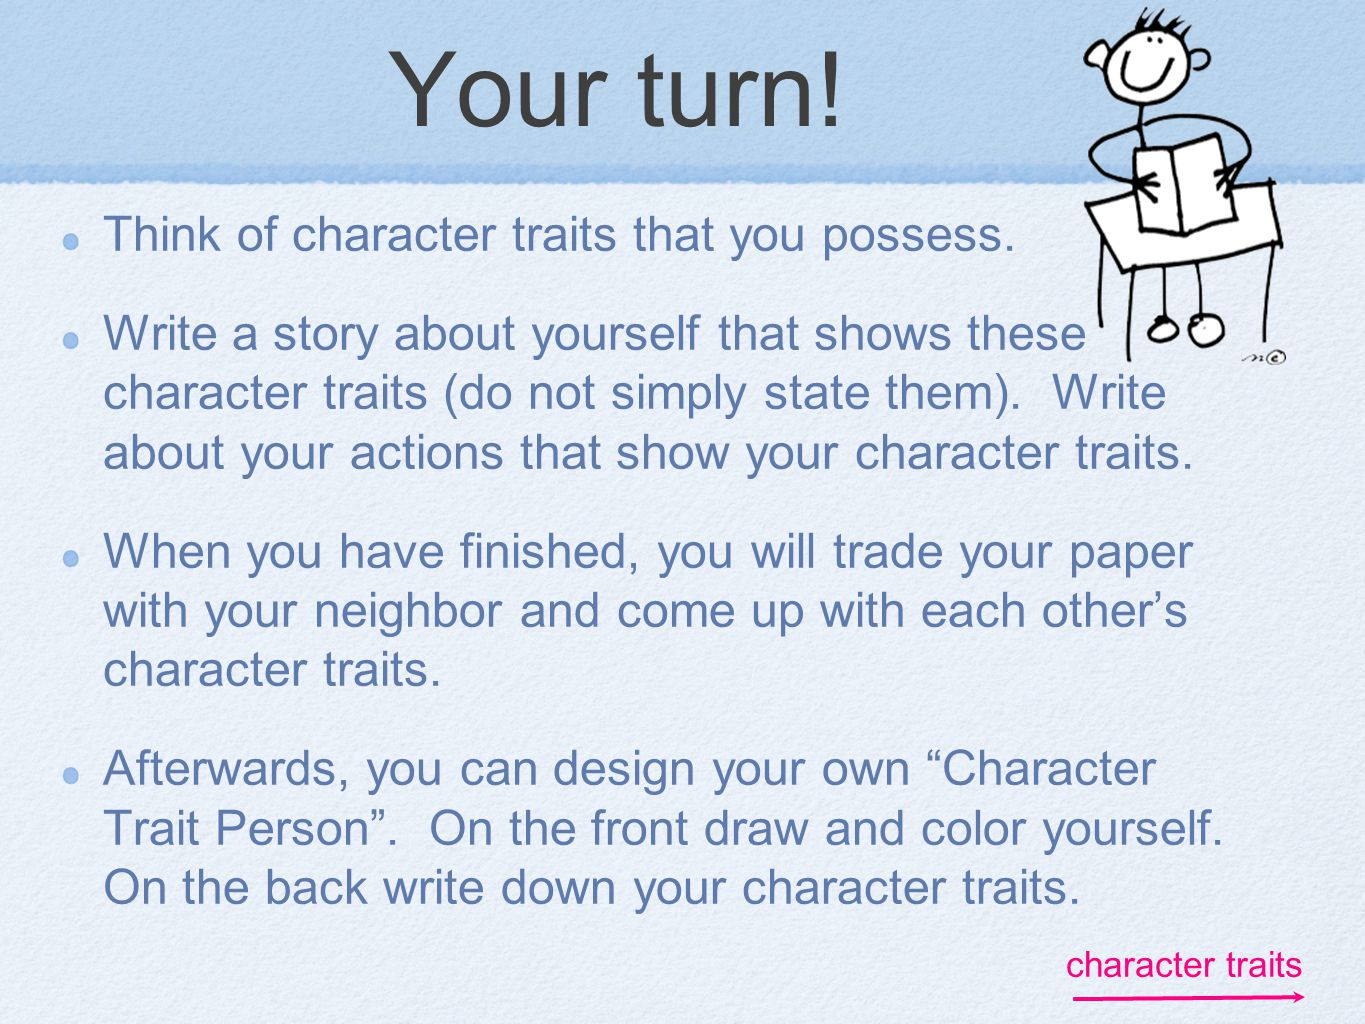 Your turn! Think of character traits that you possess. Write a story about yourself that shows these character traits (do not simply state them). Writ